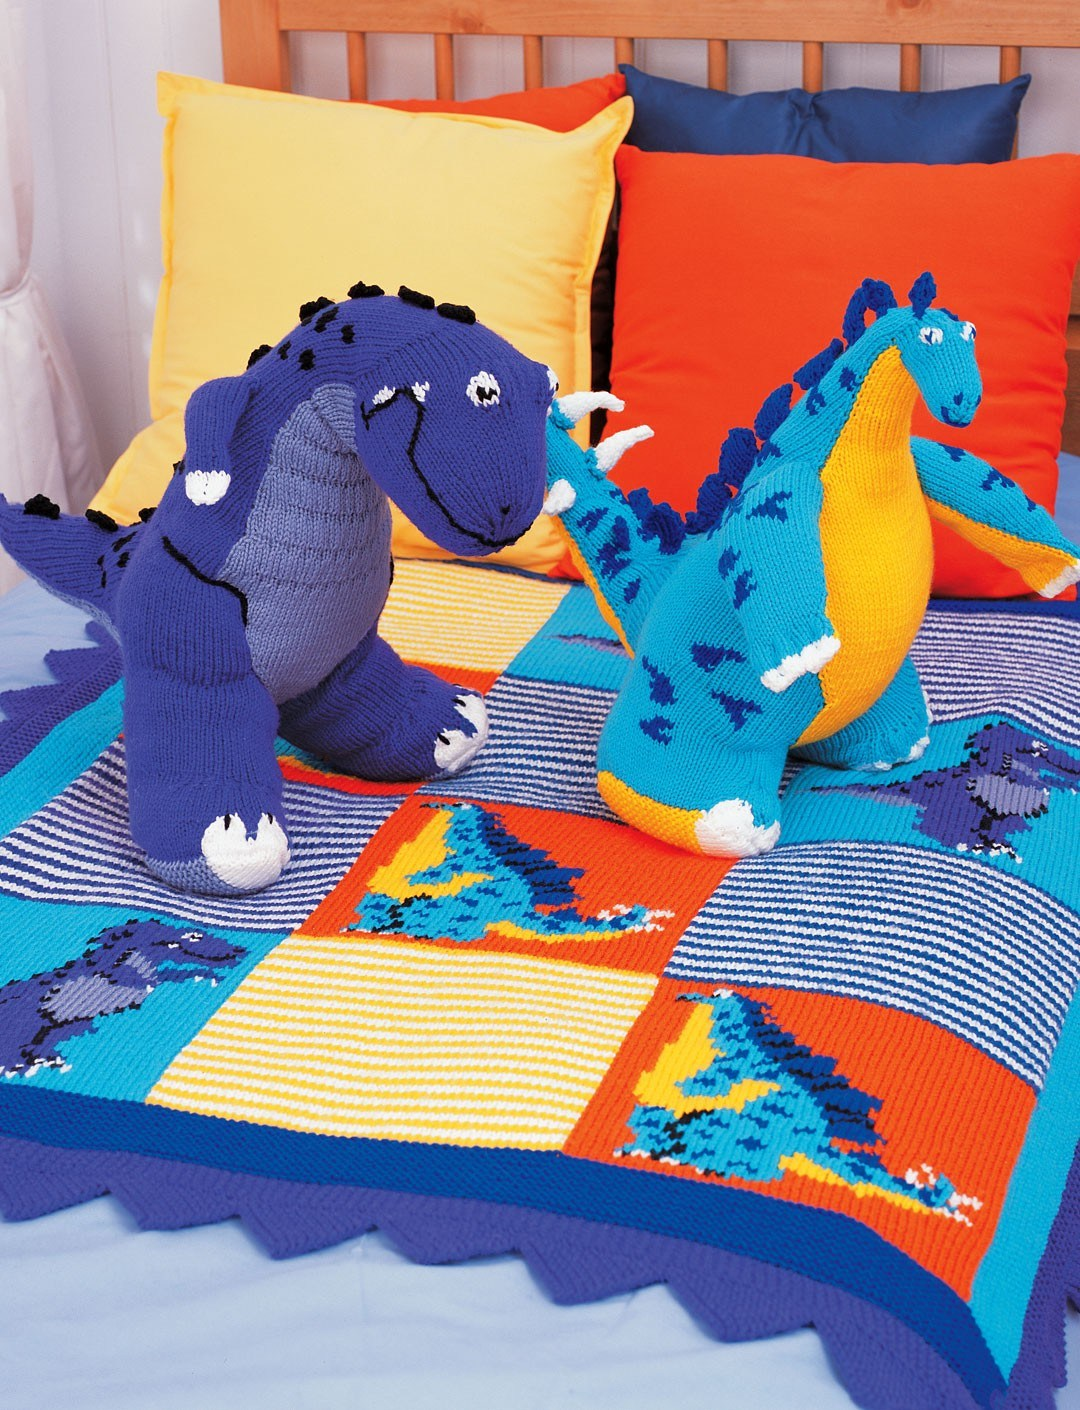 Free knitting patterns for Tyrannosaurus, Stegosaurus and Dinosaur Blanket